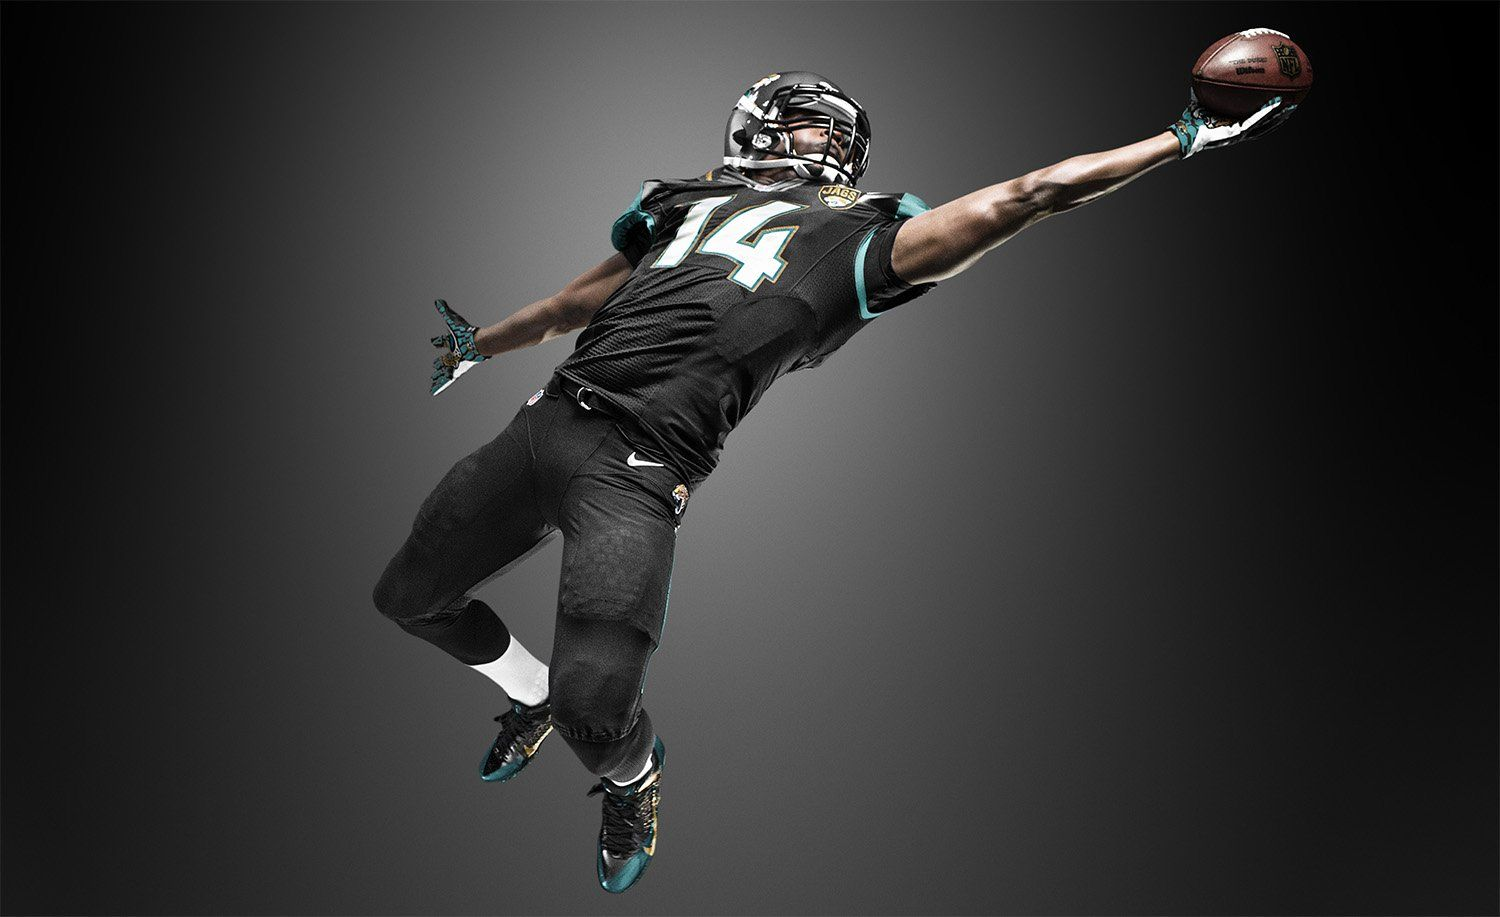 Black American Football Wallpaper Hd